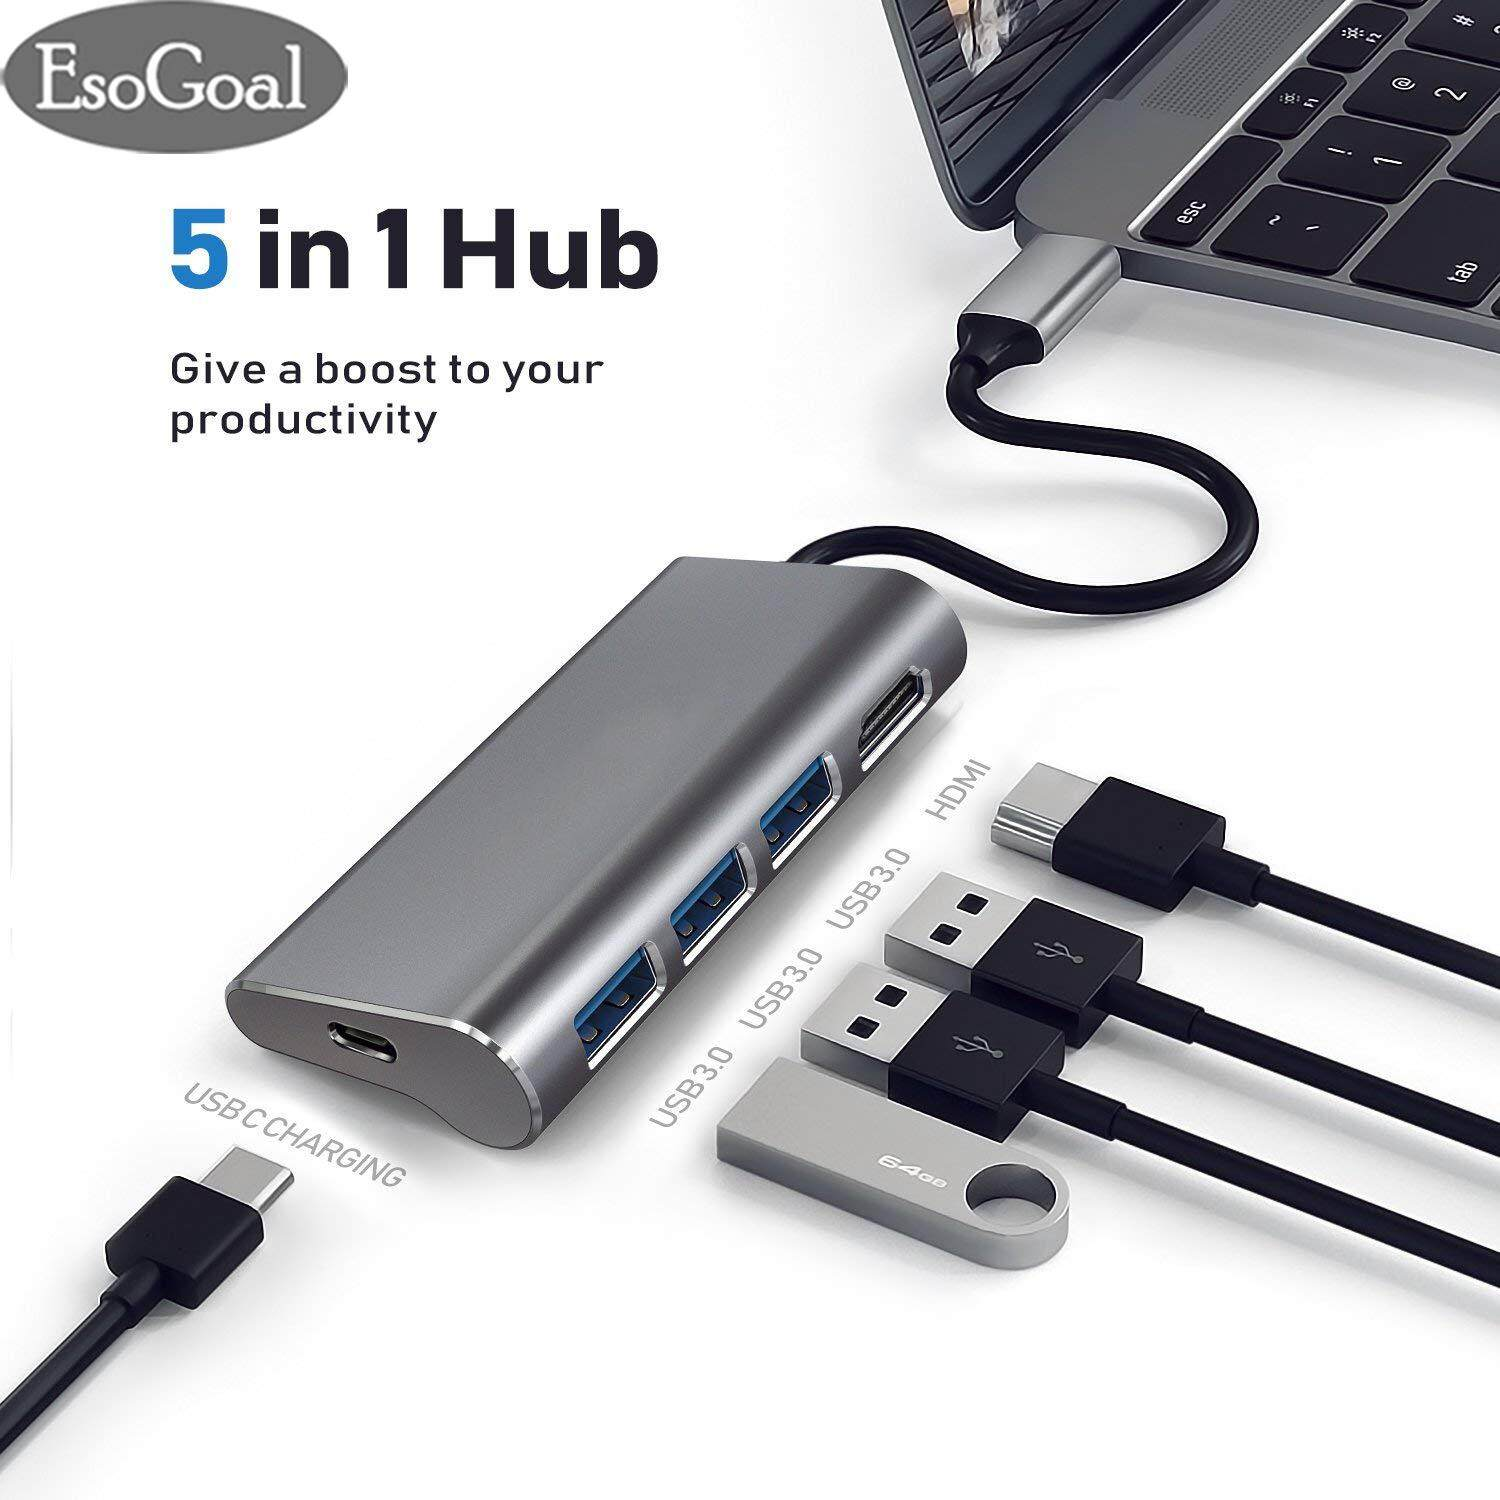 EsoGoal Hub tipe-C USB C Hub Type C Video Adapters USB Type C Hub for Macbook Pro USB Type C To HDMI Adapter Dock with 4K HDMI Port, 3 USB 3.0 Ports USB C